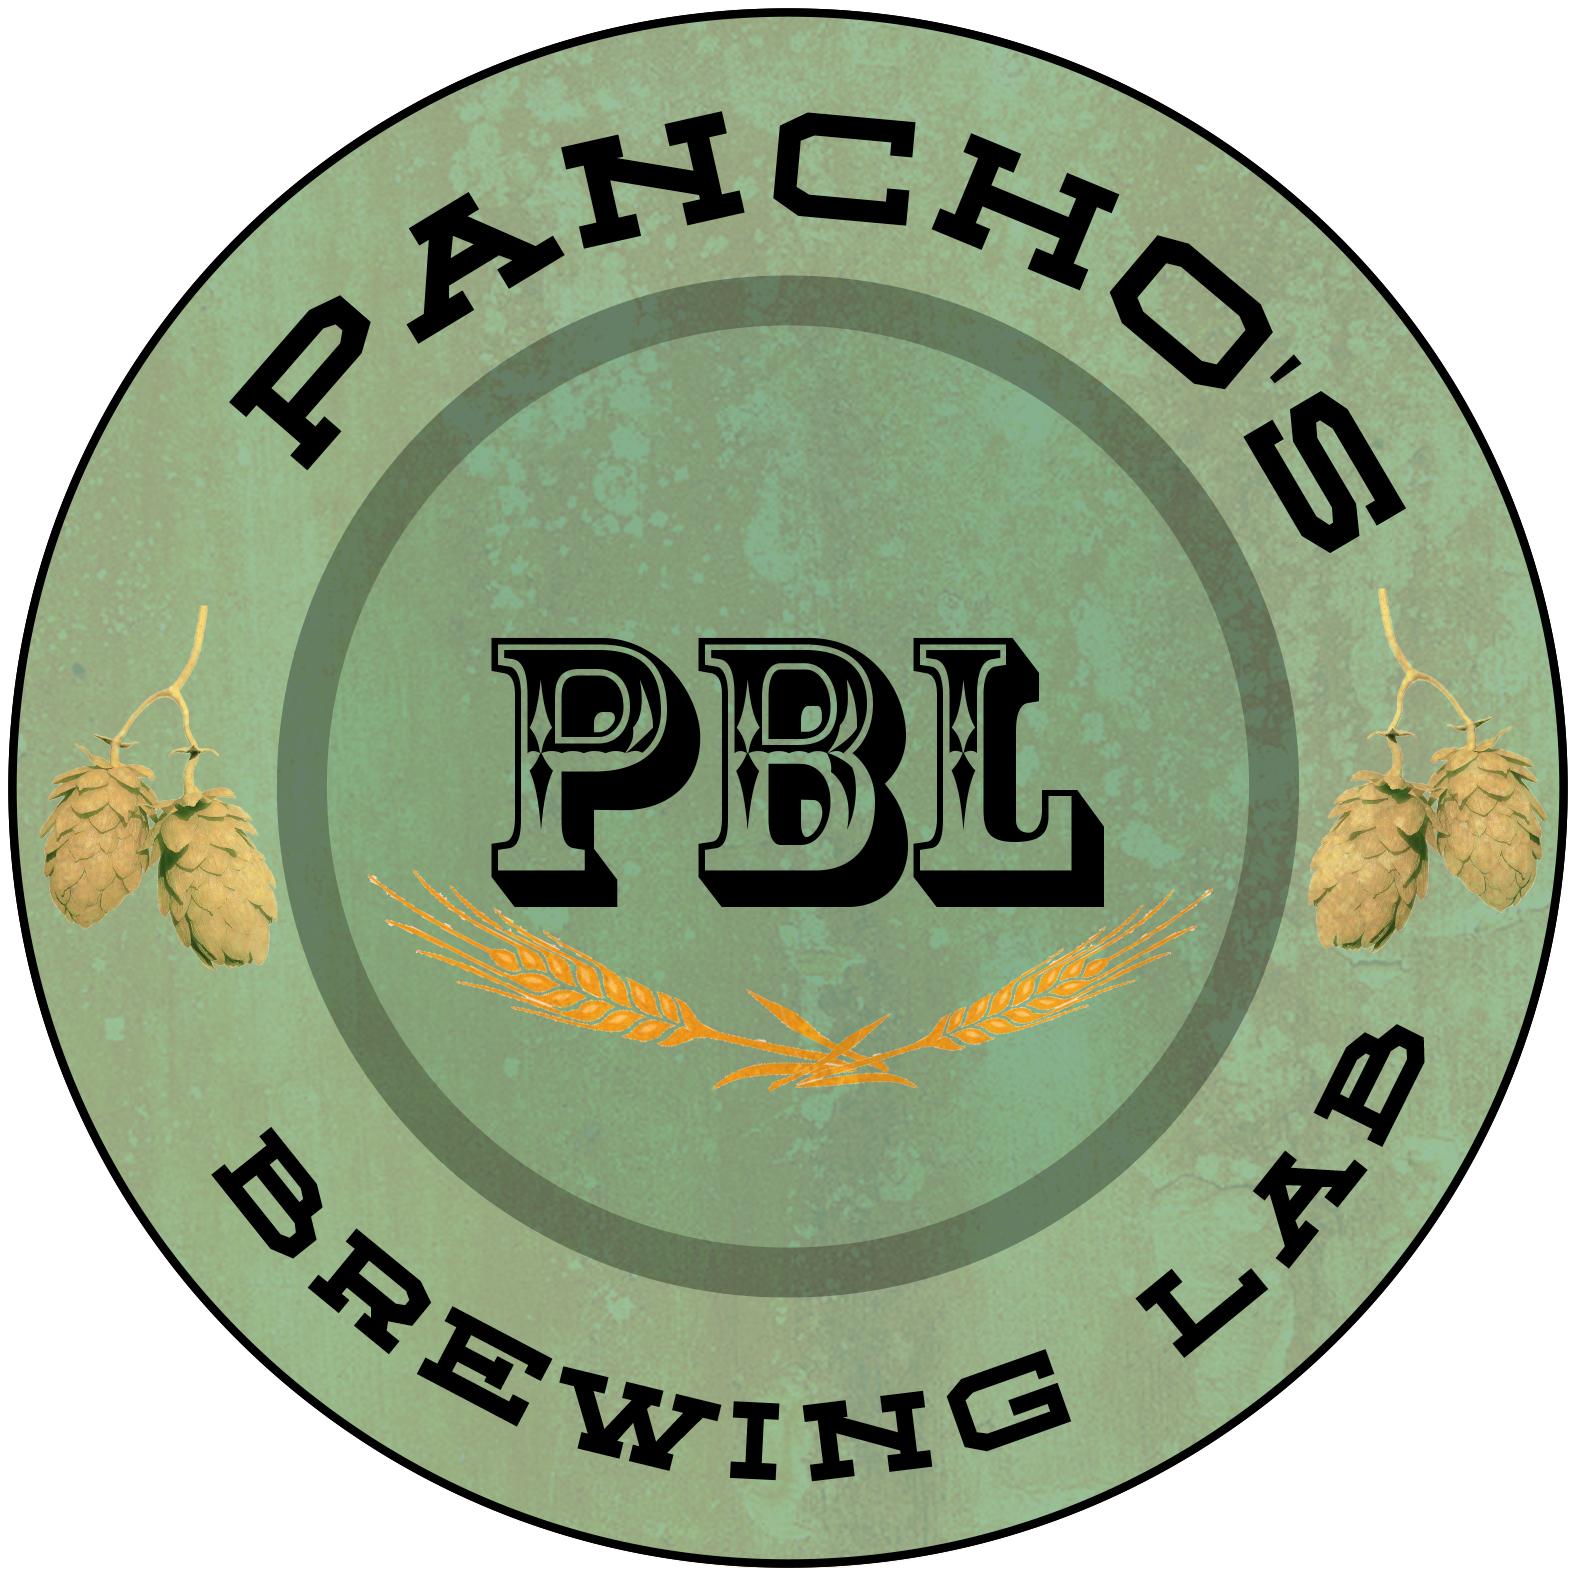 Panchos Brewing Lab logo